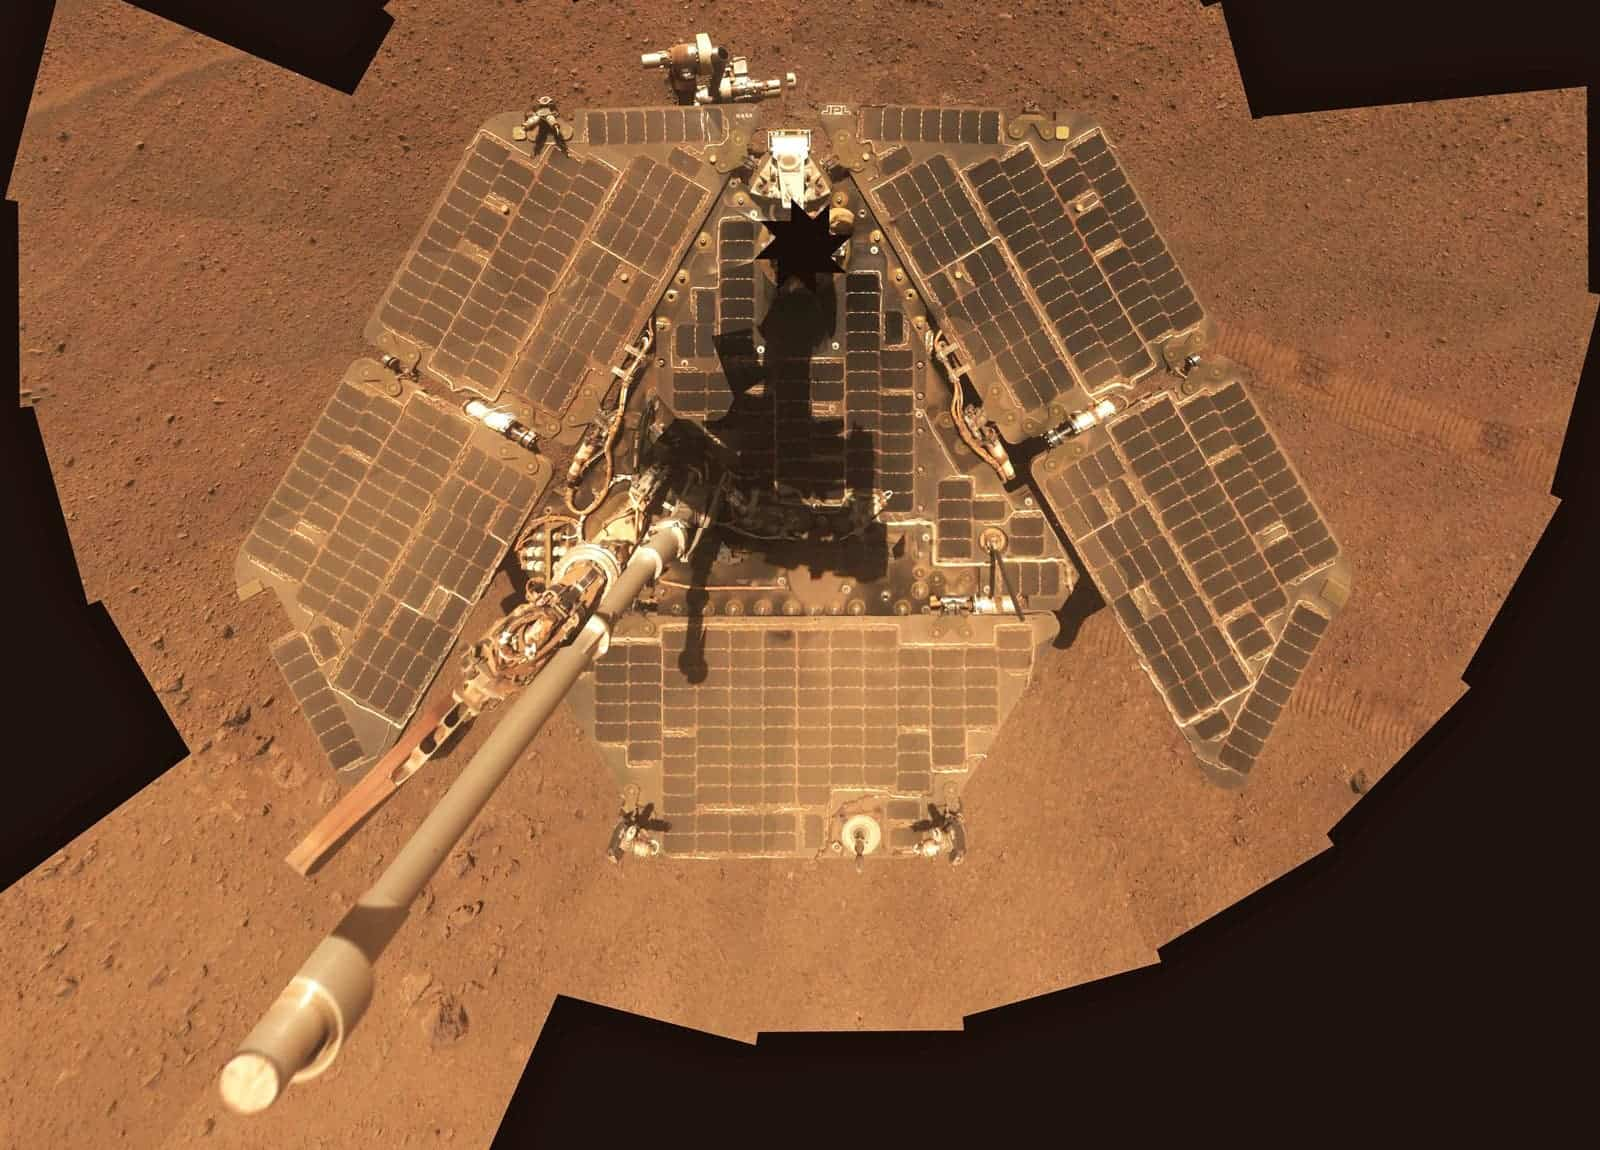 Nasa declares 'spaceship EMERGENCY' after losing contact with Mars Rover